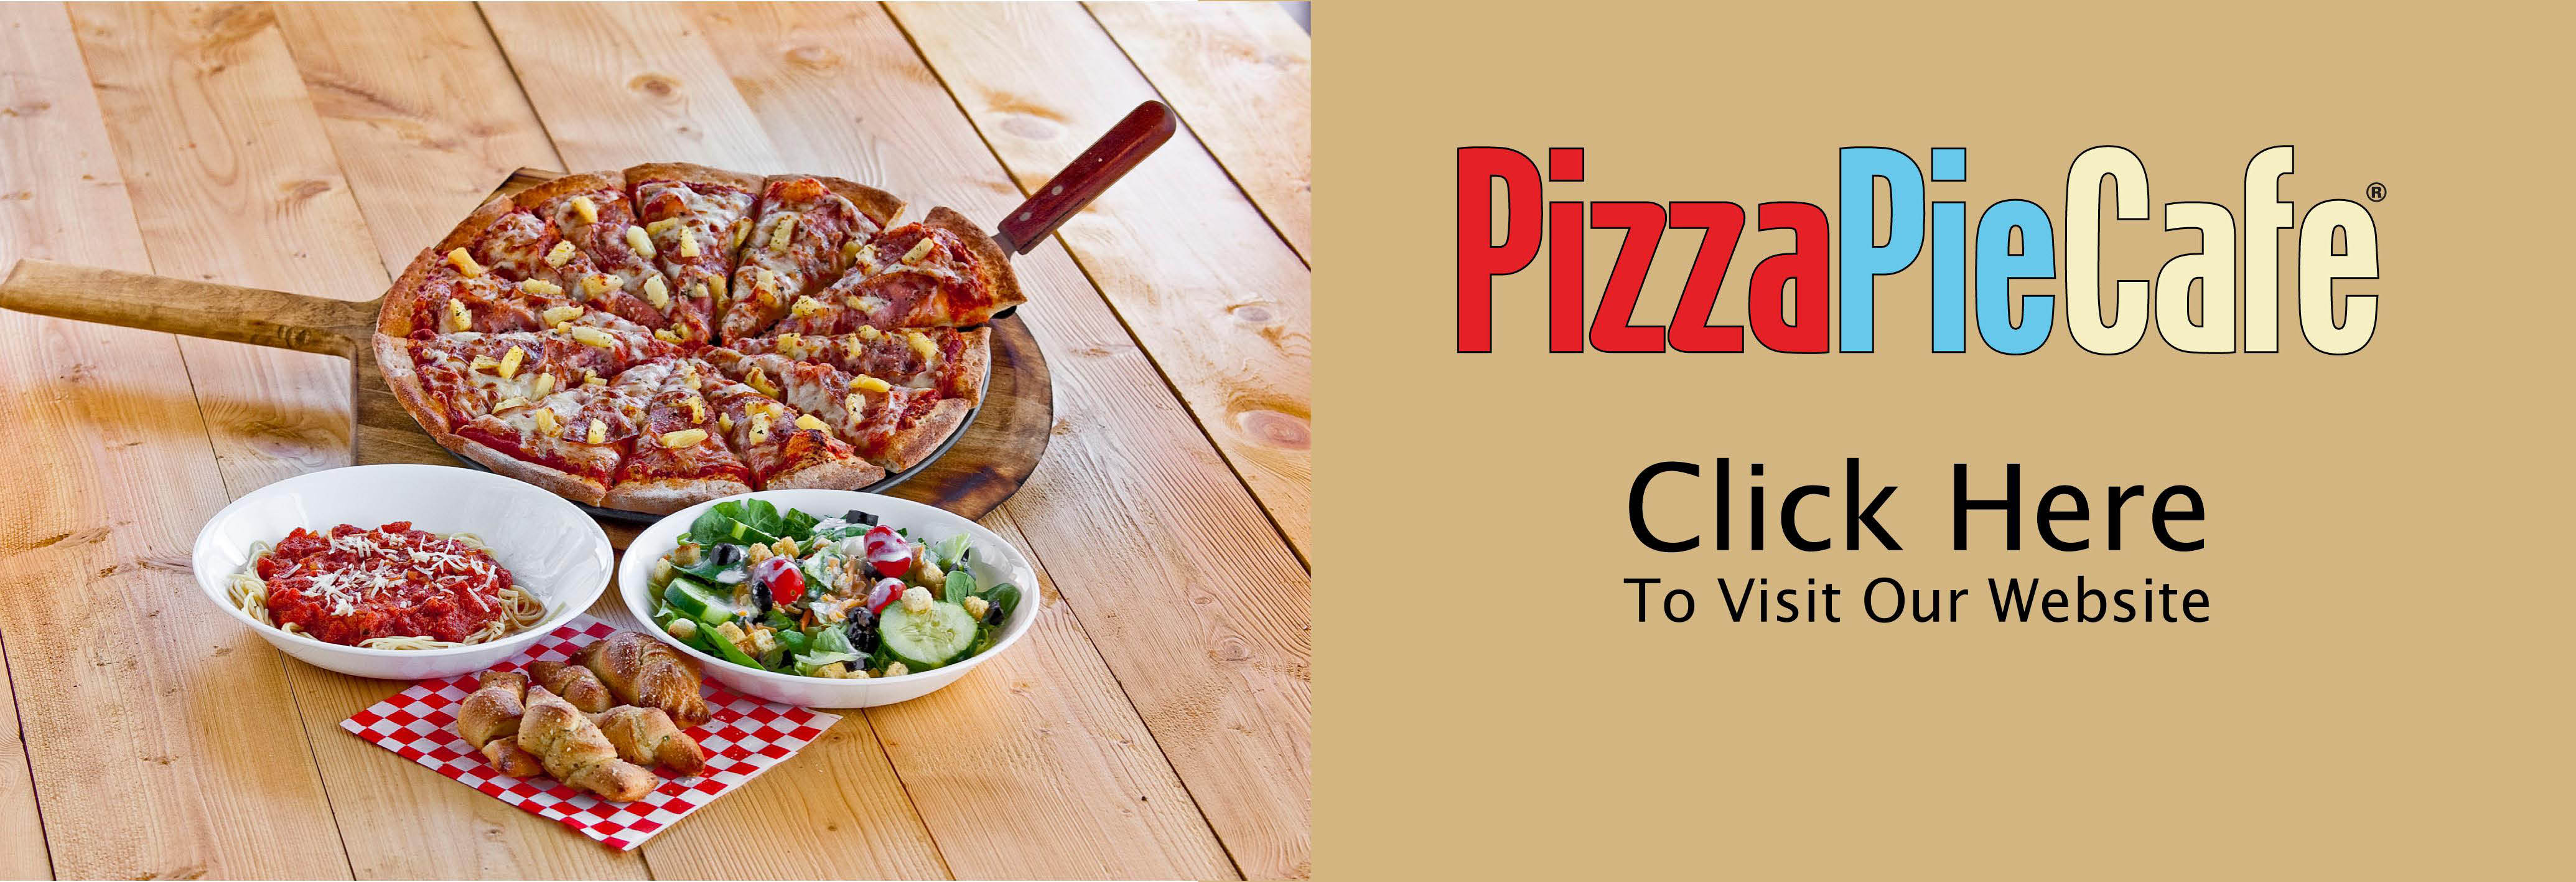 Pizza Pie Cafe Banner